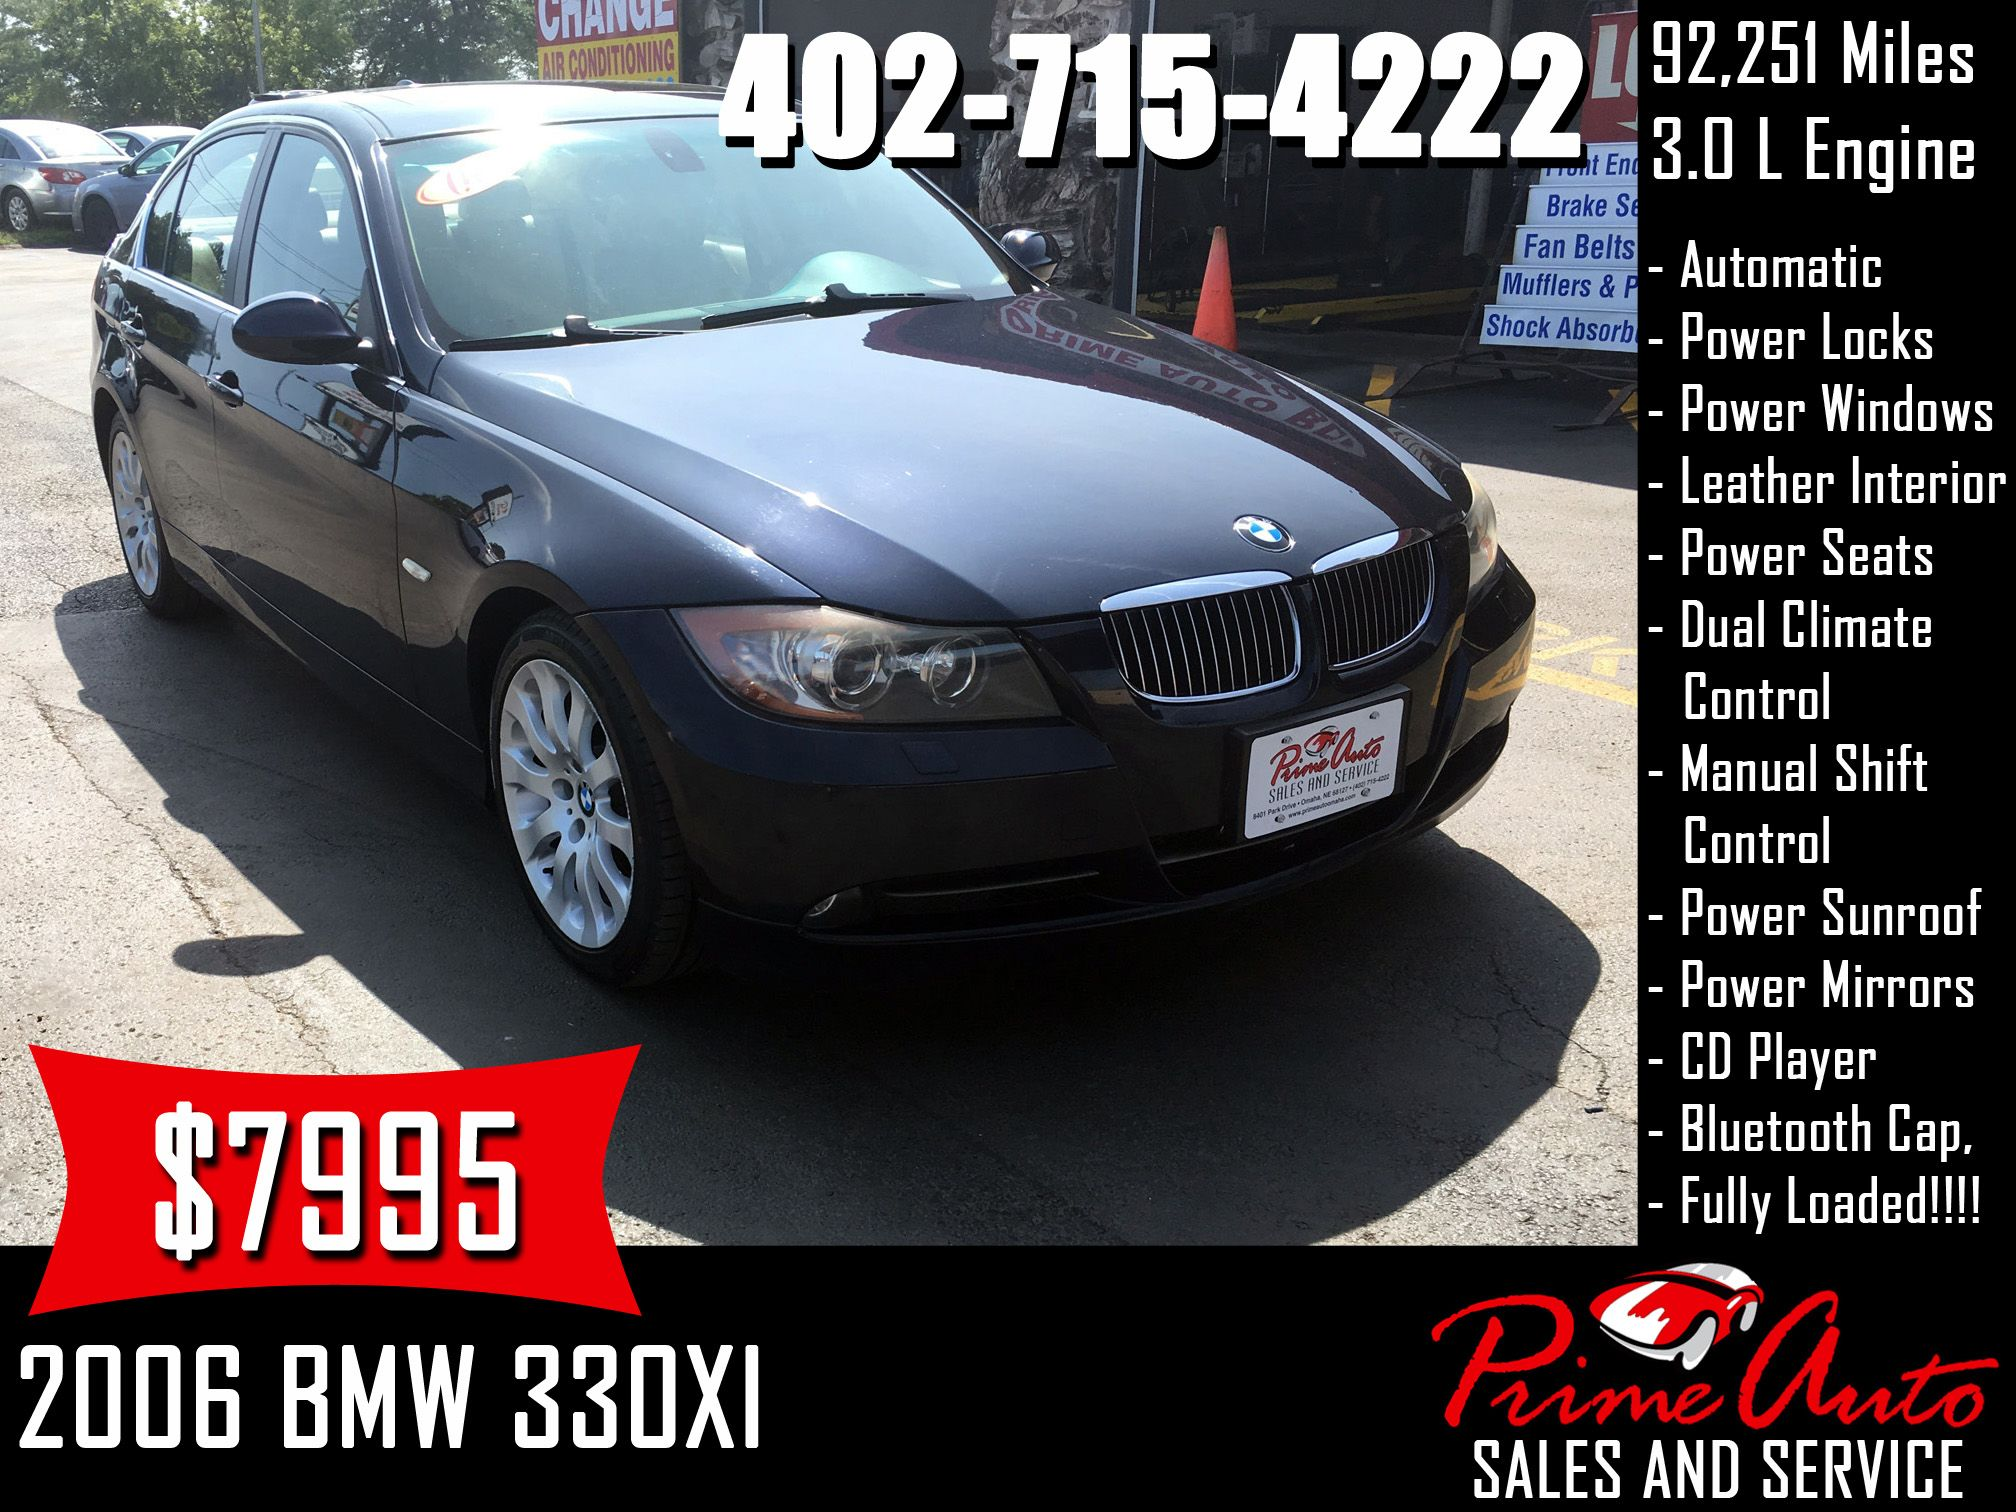 2006 Bmw 330xi Call Us Today 402 715 4222 Bmw 330xi 3series Awd Luxury Cars Auto Omaha Carsforsale Buyme Bmw Car Repair Service Used Car Lots